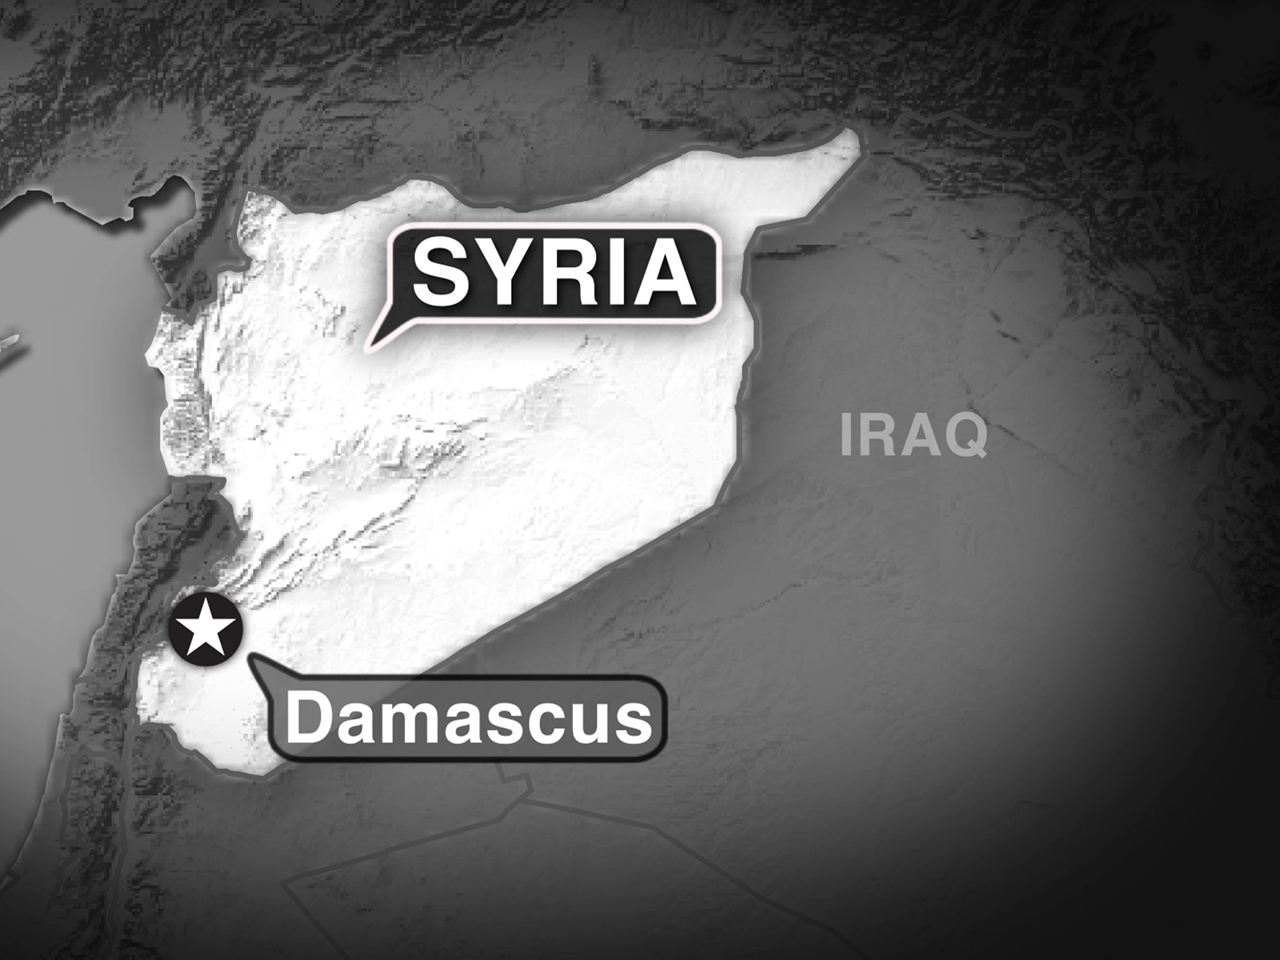 syria tv helicopter clipped tail of passenger jet cbs news